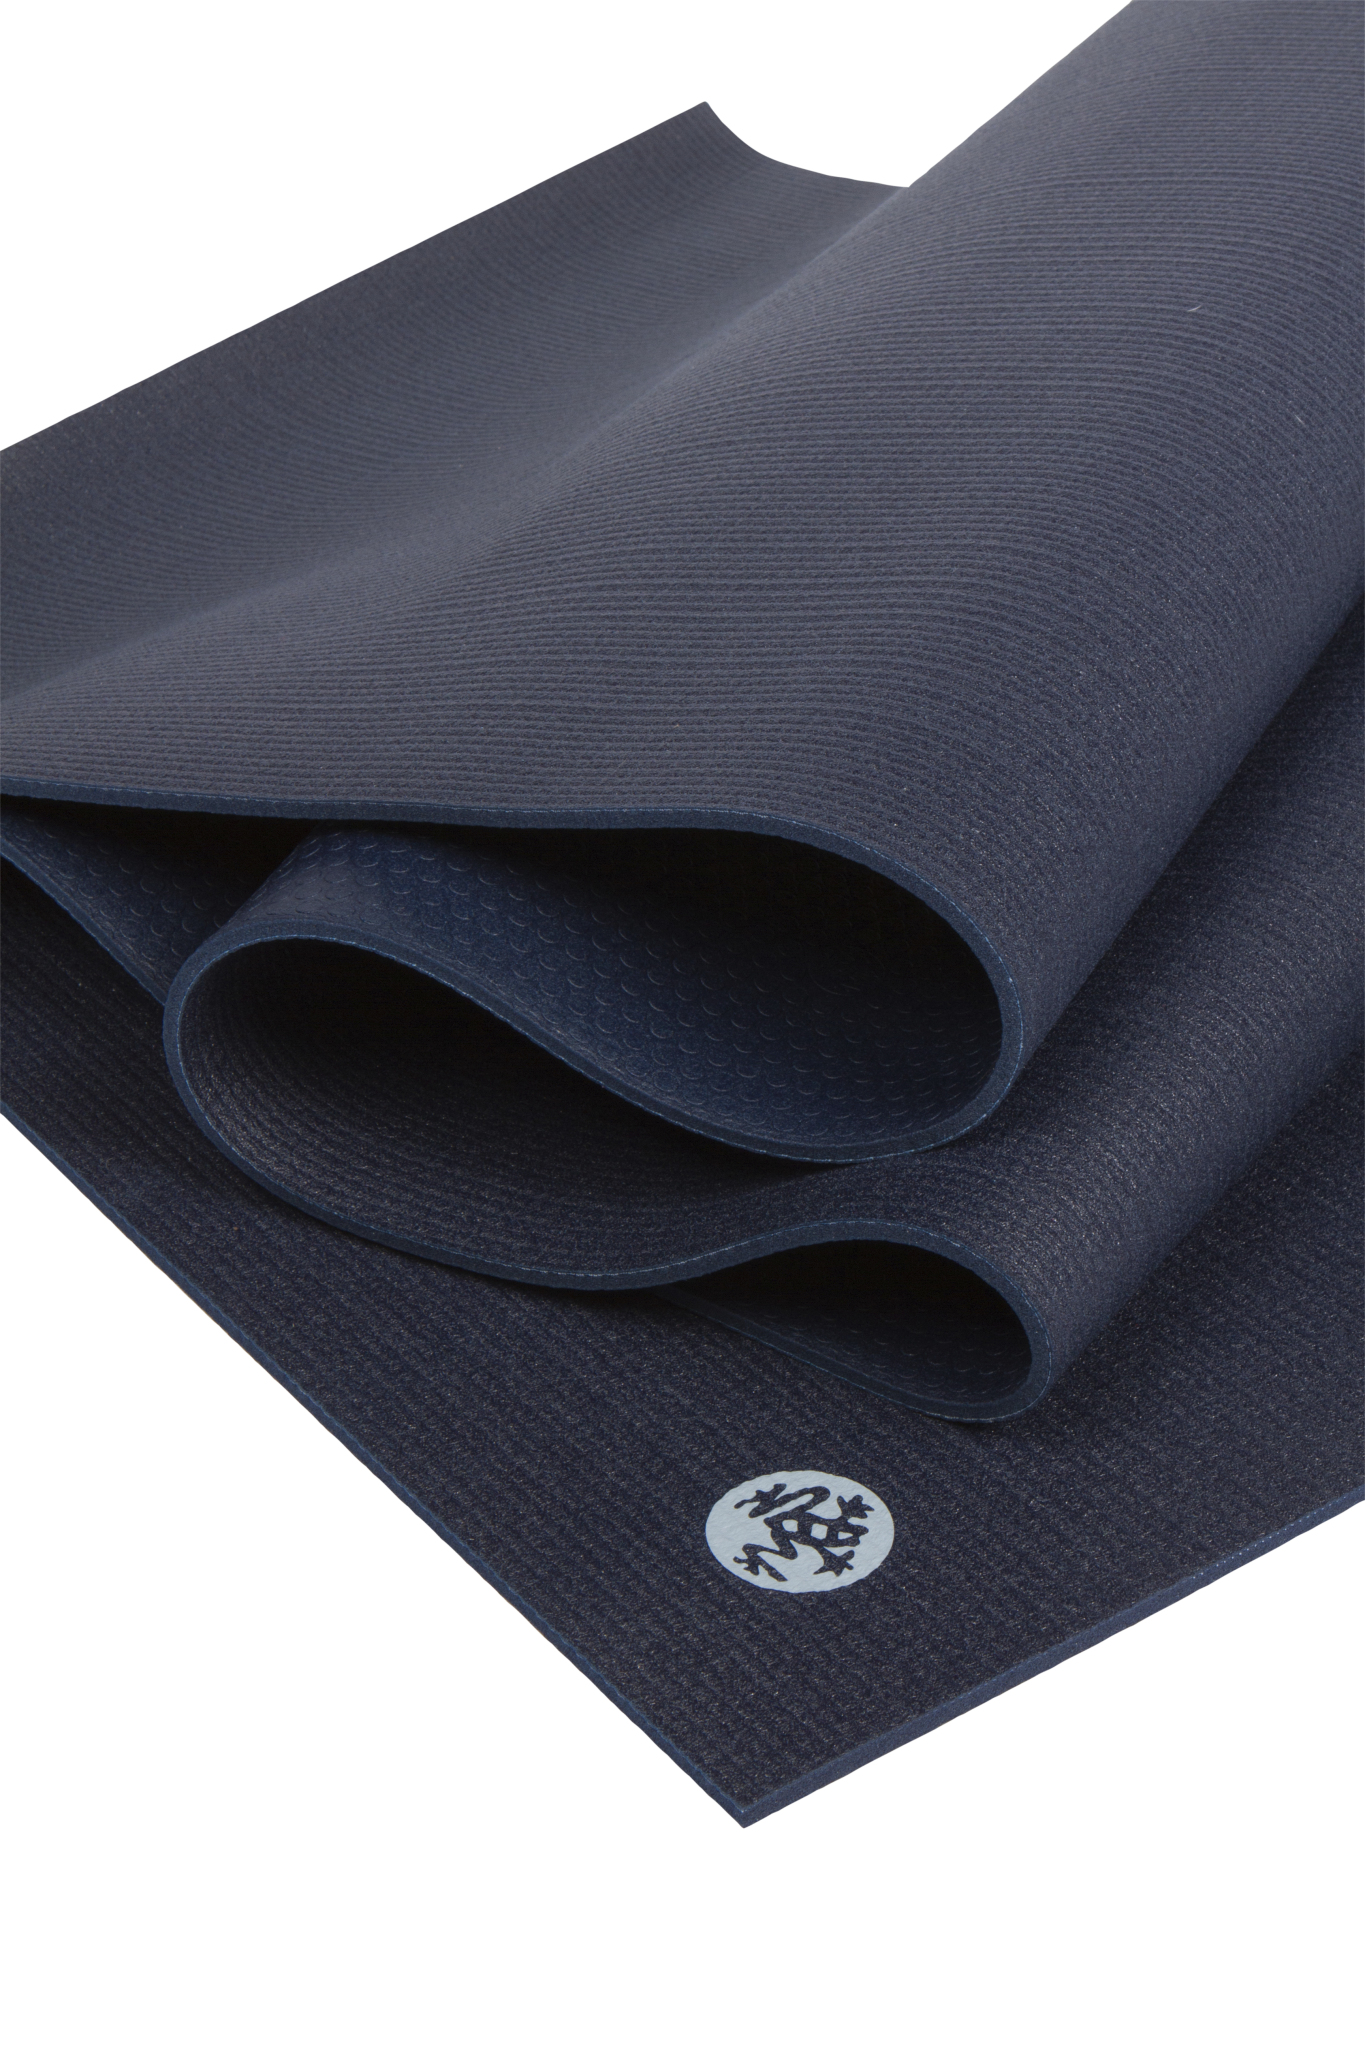 Коврик для йоги Manduka PROlite Mat 4,5мм (2.1 кг, 200 см, 4.5 мм, темно-синий, 60см (Midnight))